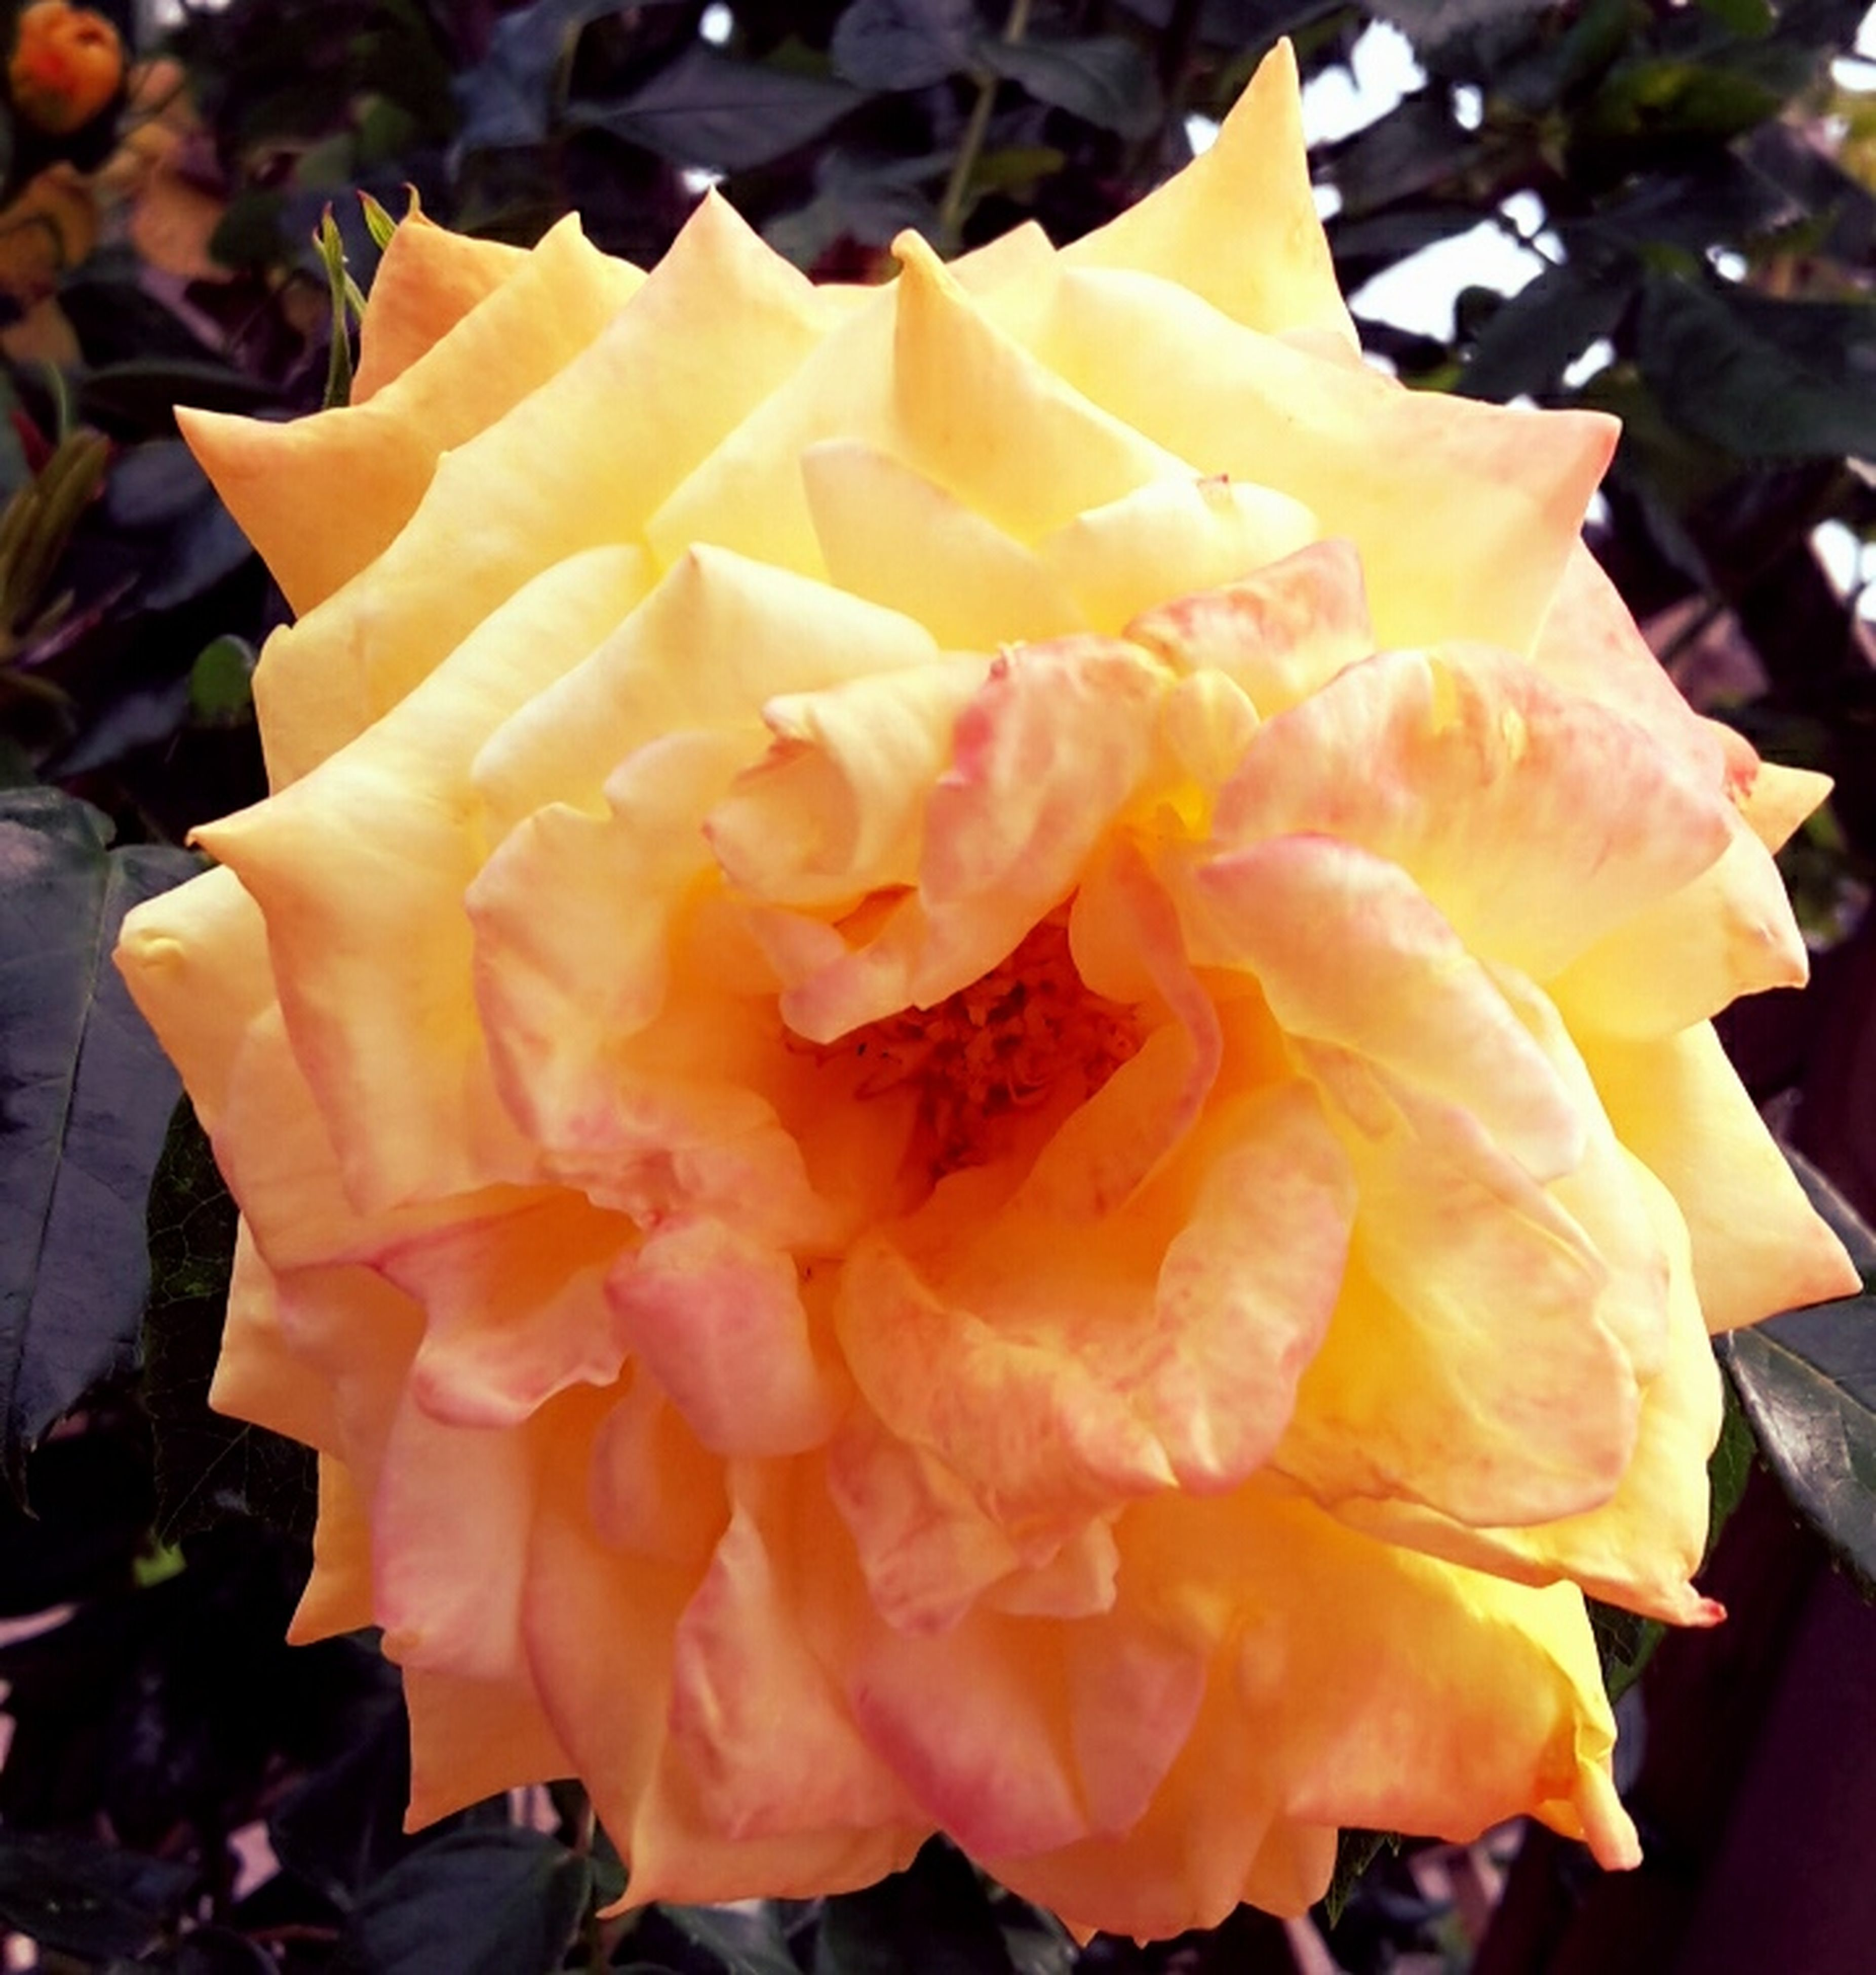 petal, flower, flower head, fragility, freshness, close-up, beauty in nature, yellow, rose - flower, blooming, single flower, nature, focus on foreground, growth, orange color, vibrant color, in bloom, no people, plant, outdoors